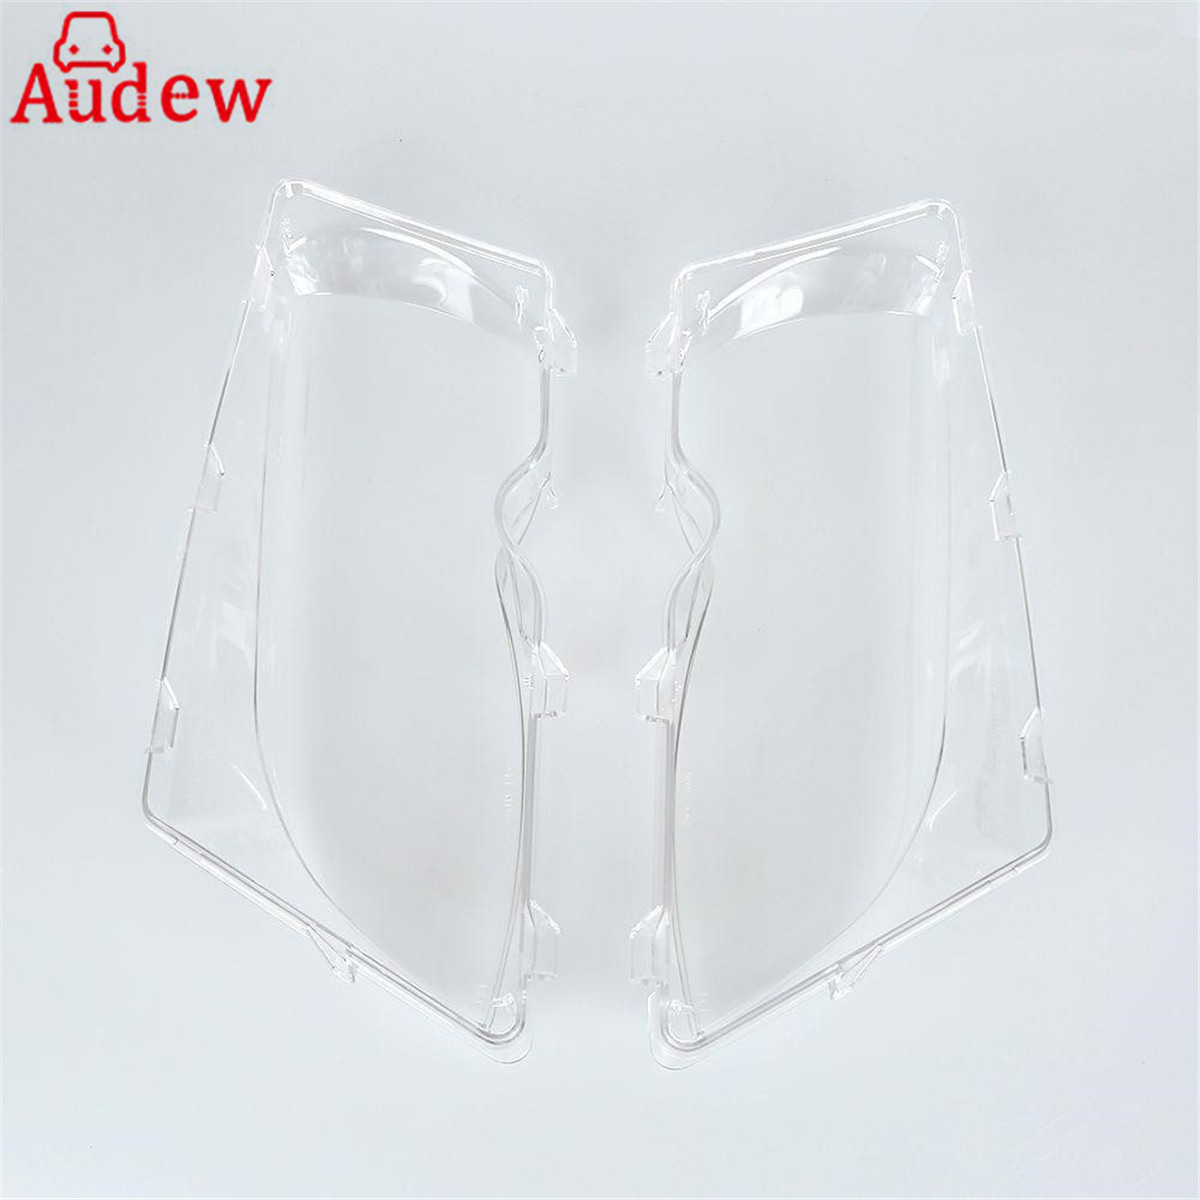 1Pair Car Lights Headlight Shell Lamp Cover Glass Replacement Lens For BMW E46 318i/320i/ 325i/ 325xi/ 330i/330xi (2002-2005)